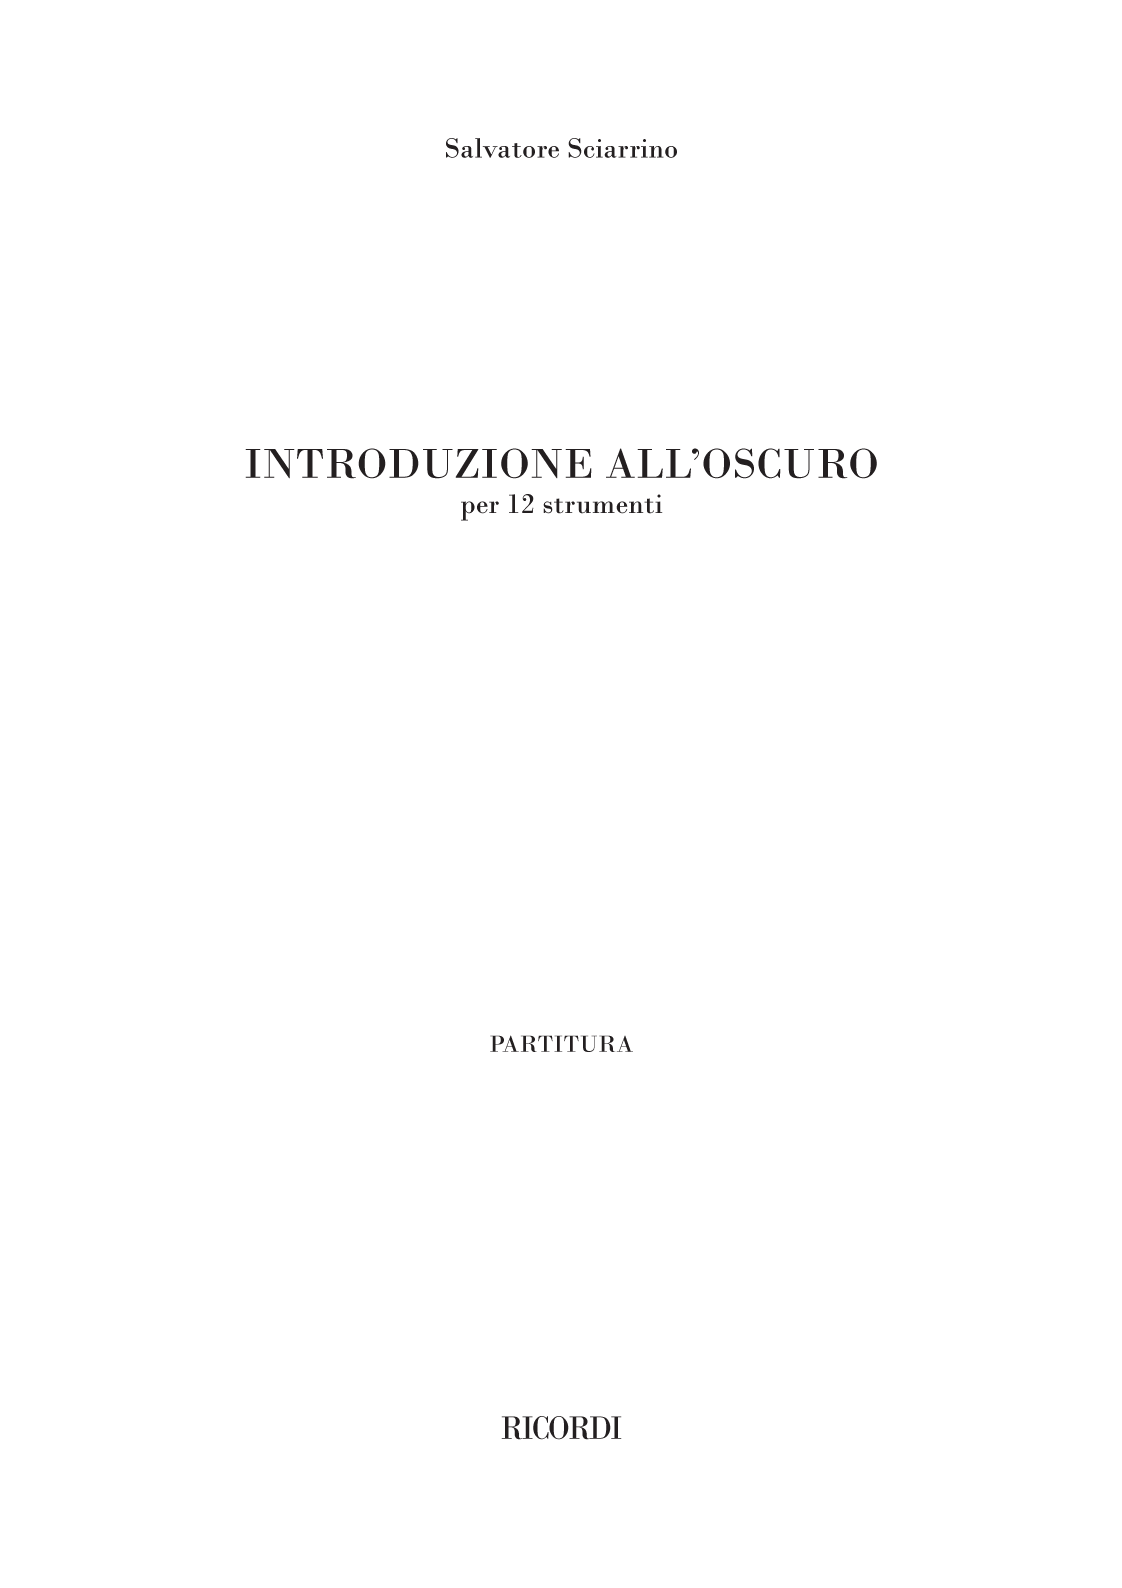 Introduzione all'oscuro (flipbook)